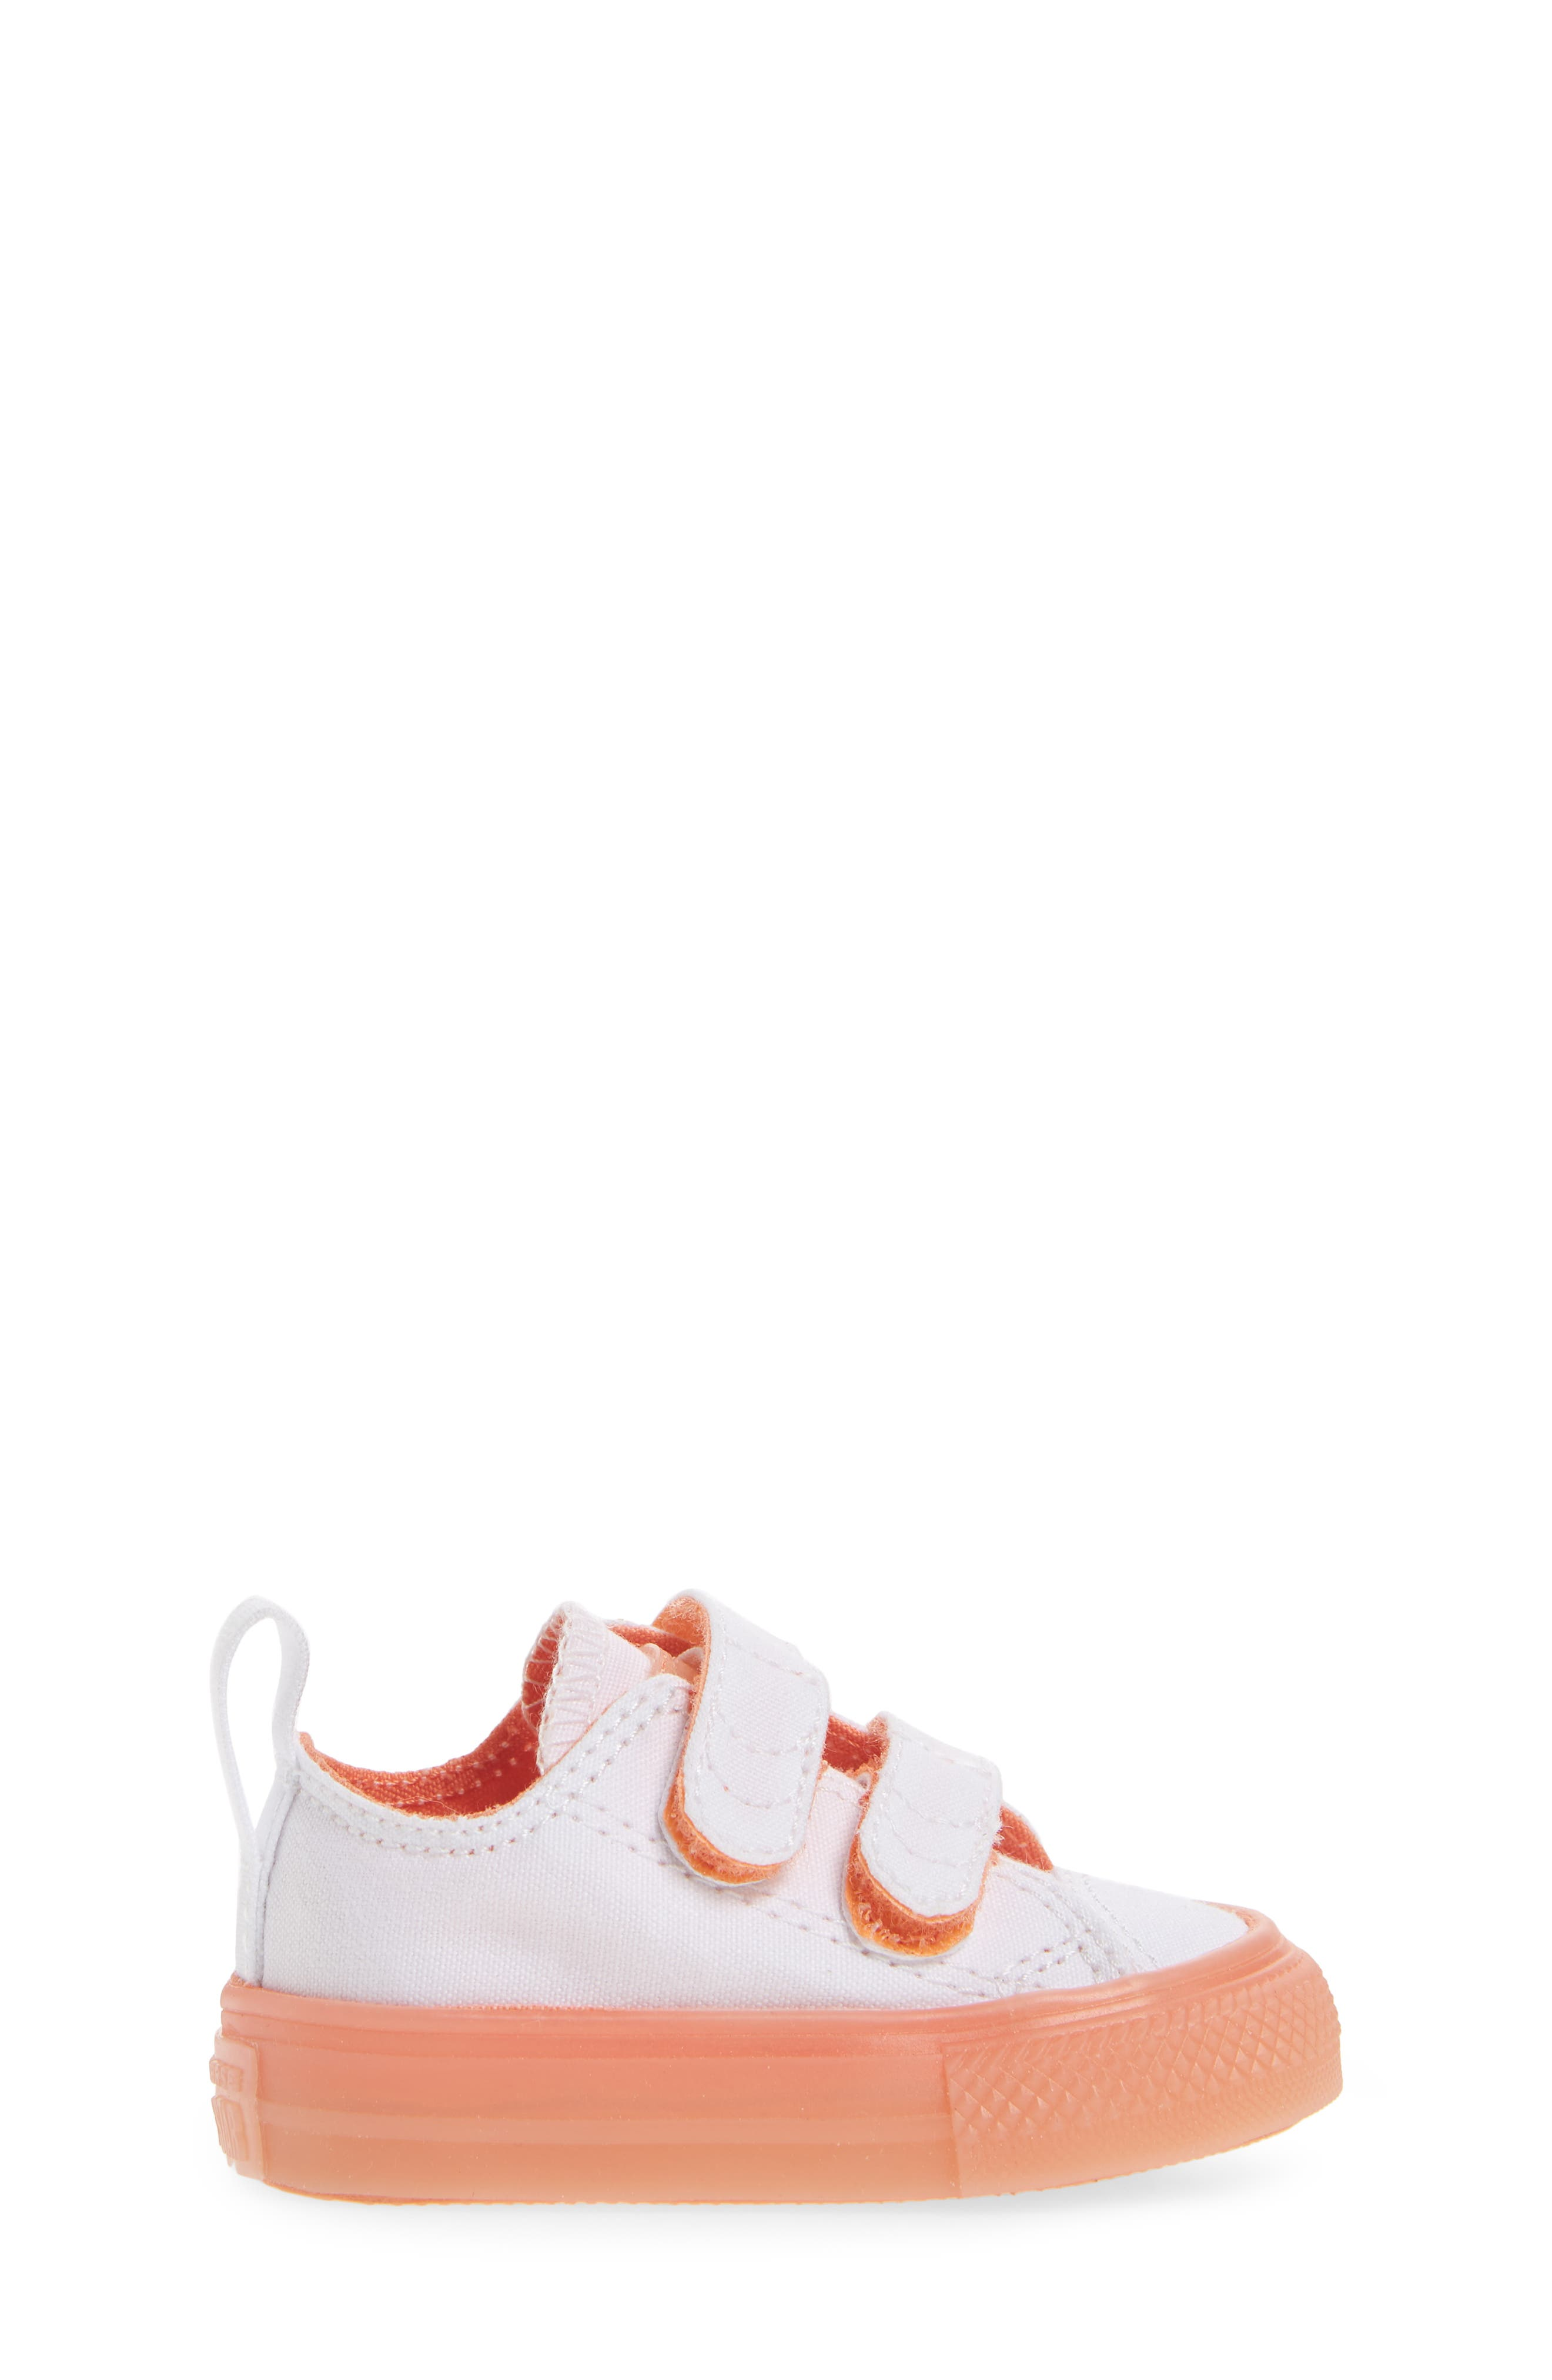 Chuck Taylor<sup>®</sup> All Star<sup>®</sup> Jelly Sneaker,                             Alternate thumbnail 3, color,                             Orange